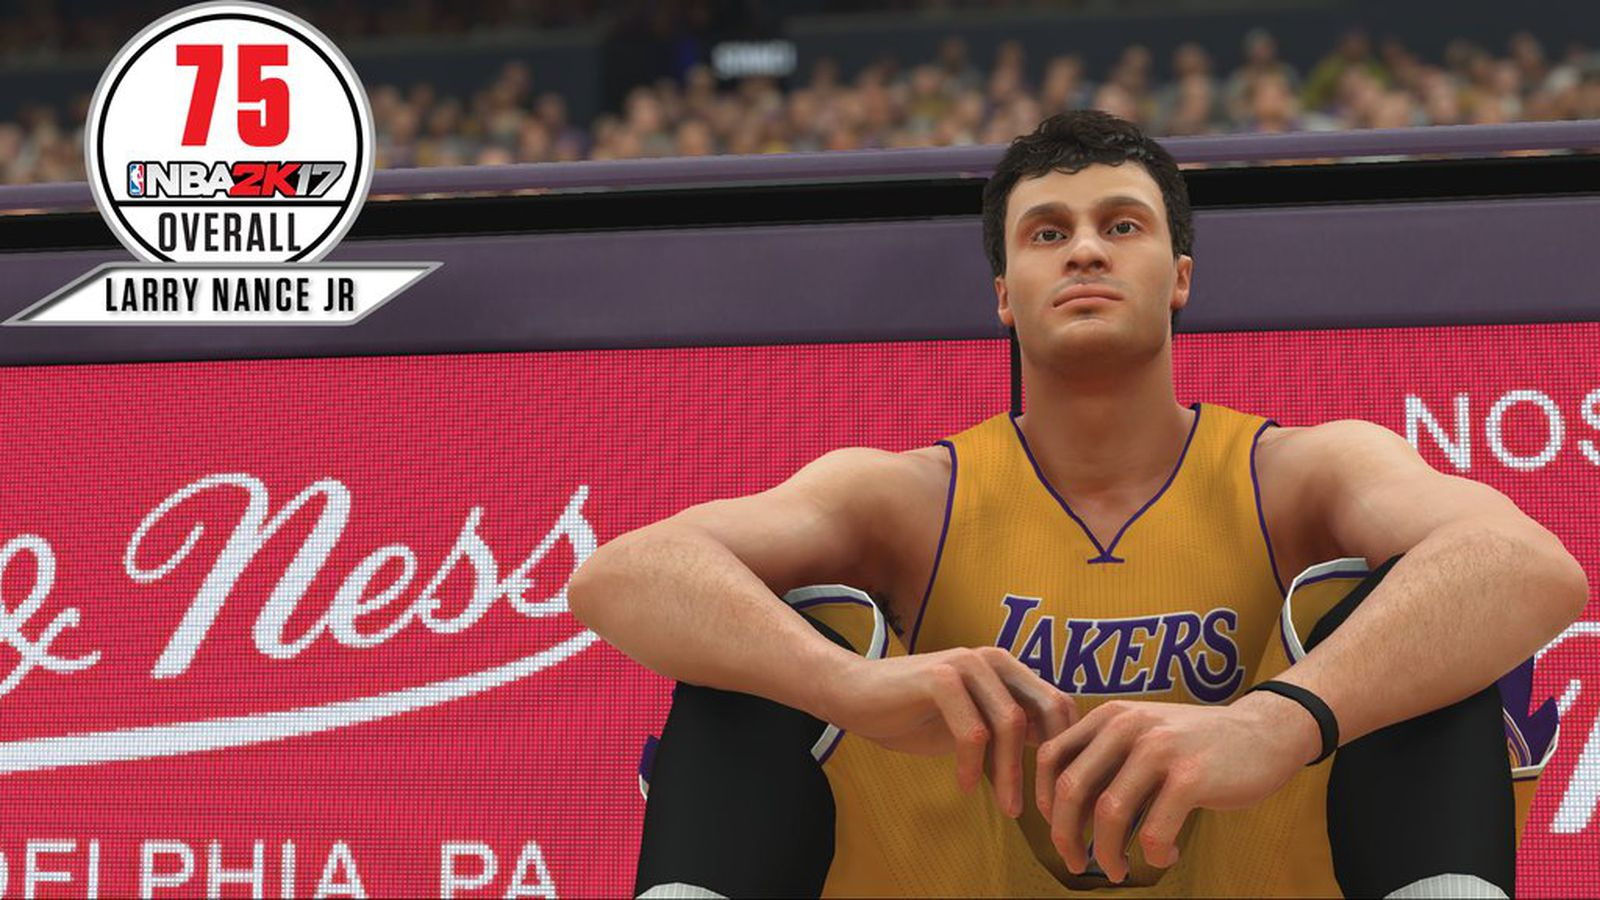 Lakers News Larry Nance Jr reveals his NBA 2K rating Silver